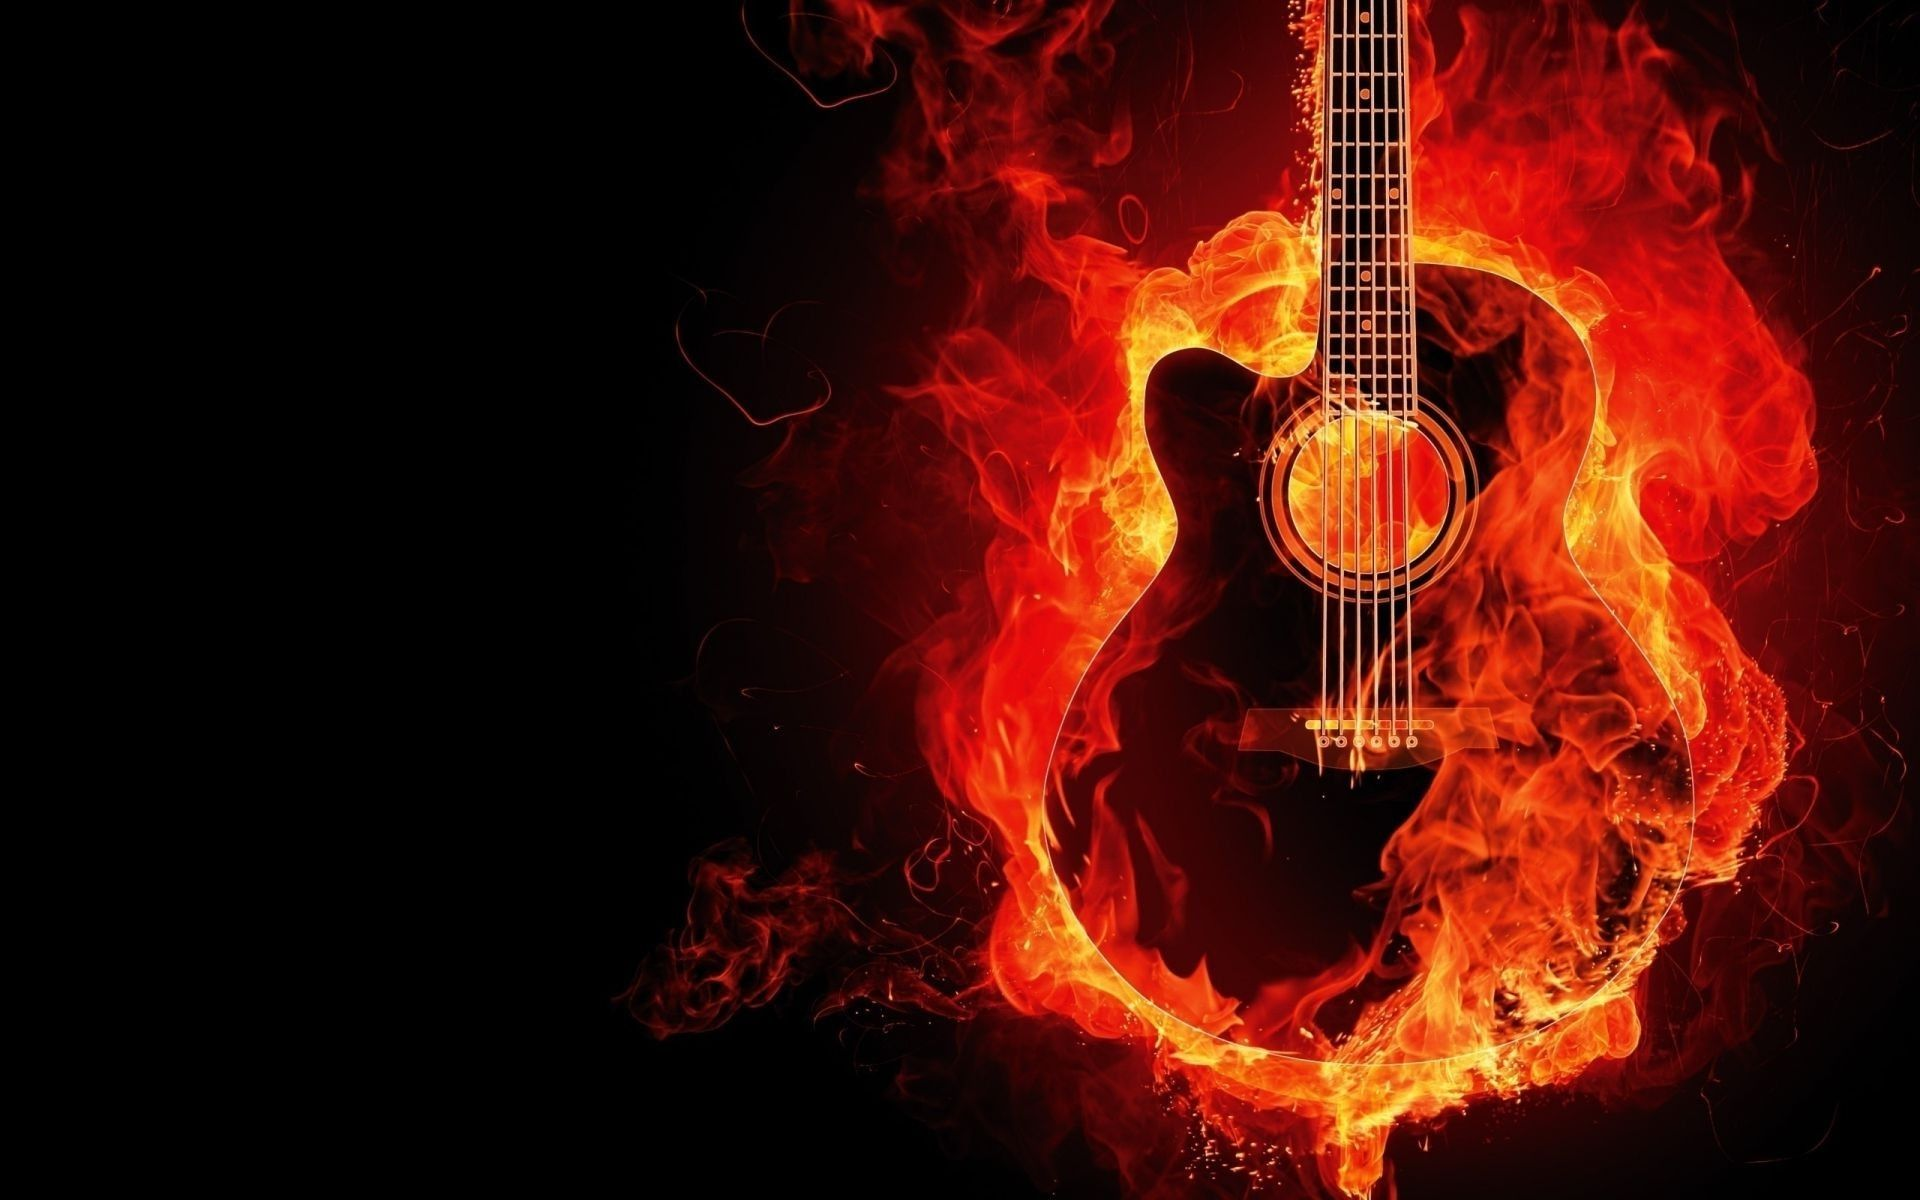 Fire Guitar, Desktop Wallpaper